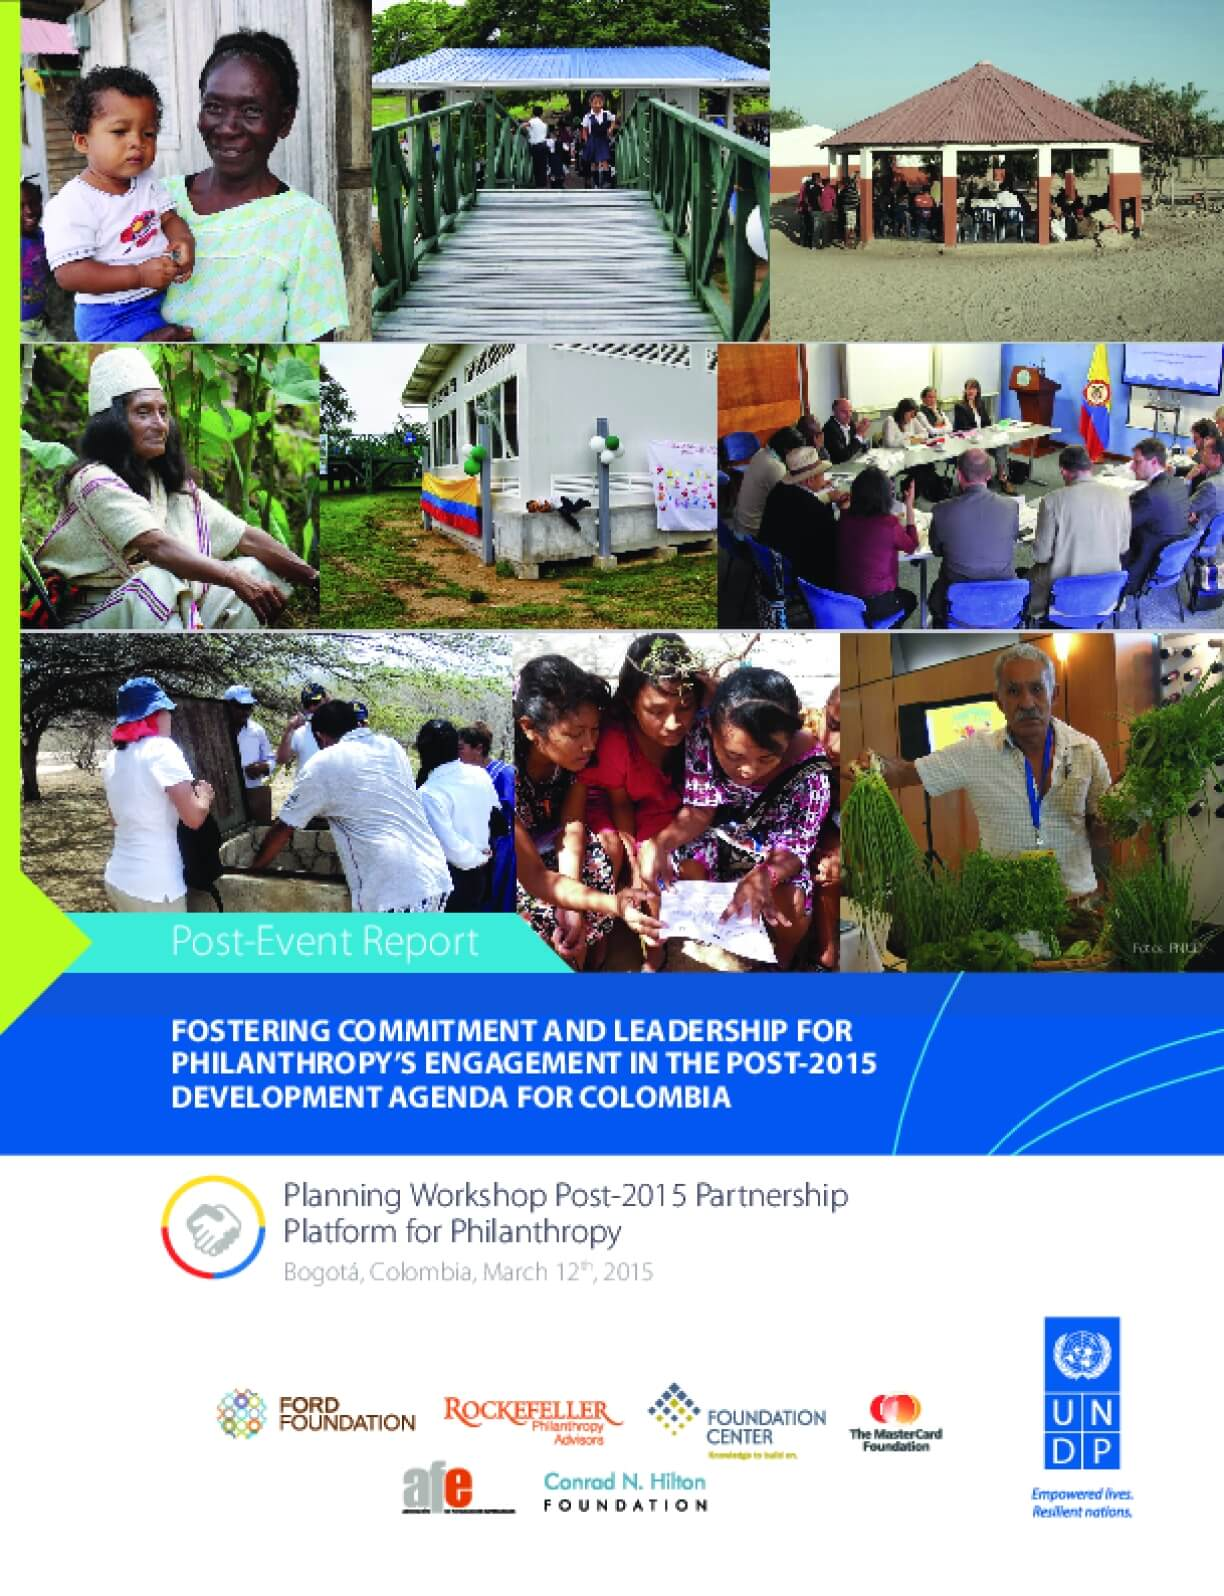 Post-Event Report: Fostering Commitment and Leadership for Philanthropy's Engagement in the Post-2015 Development Agenda for Colombia